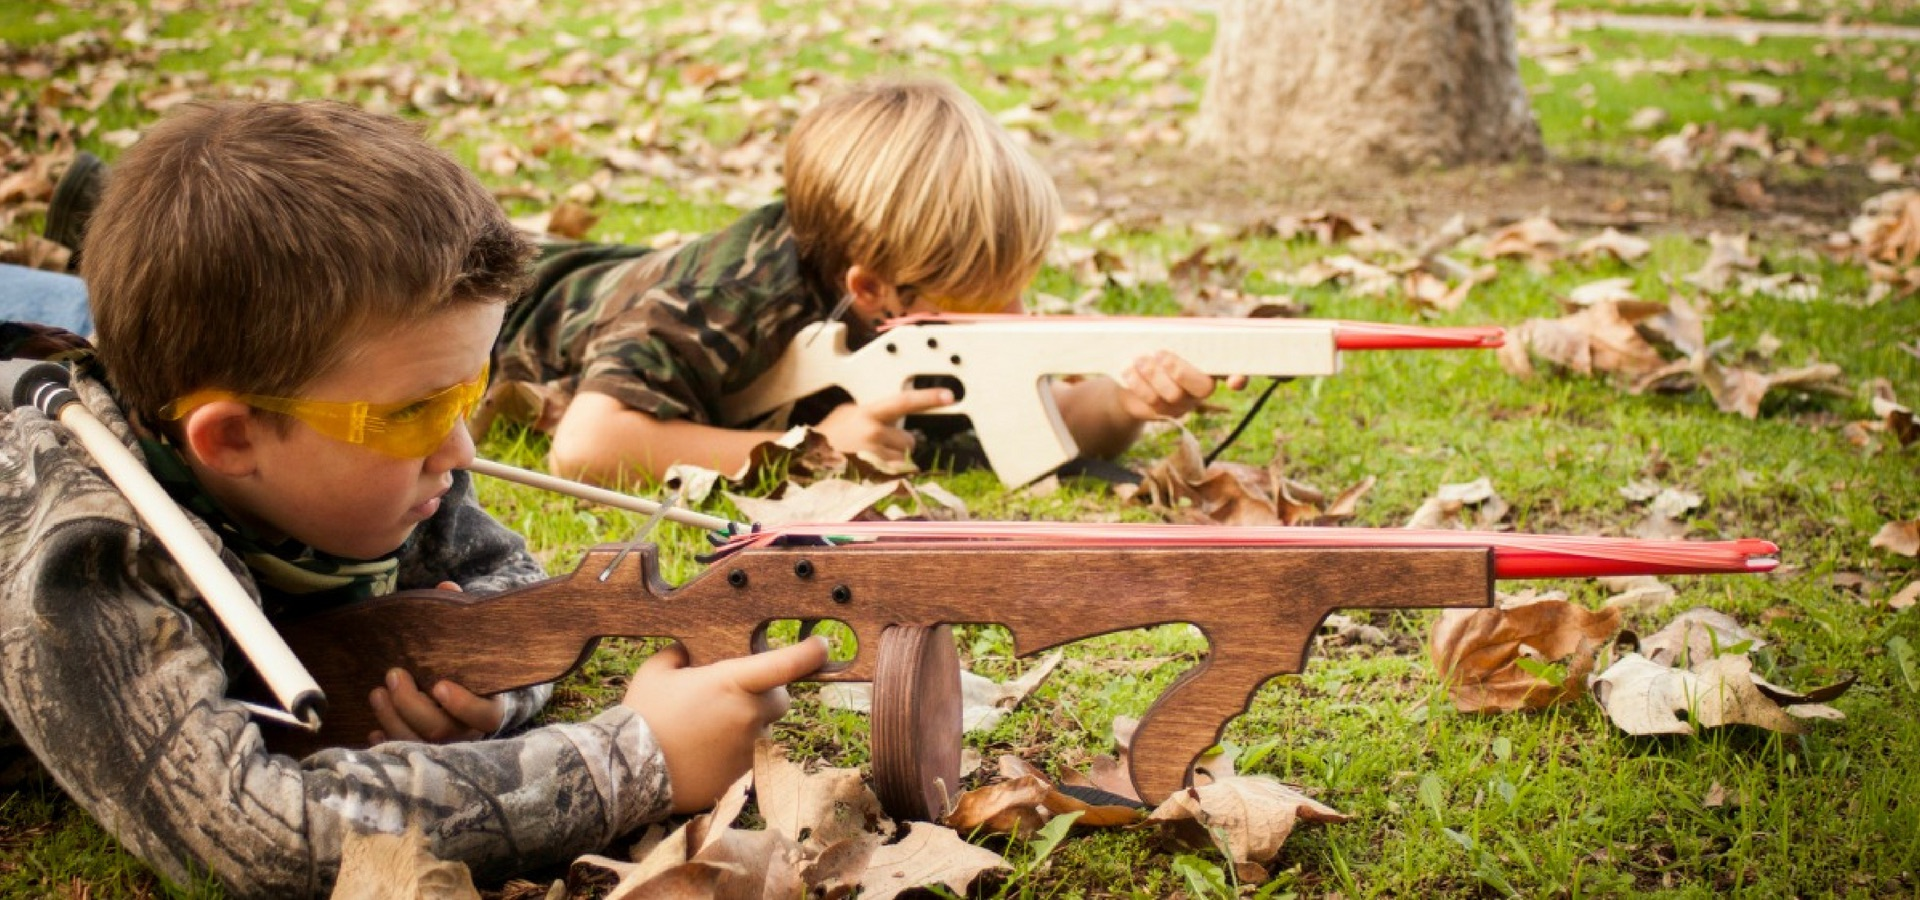 Should Children Play With Toy Guns